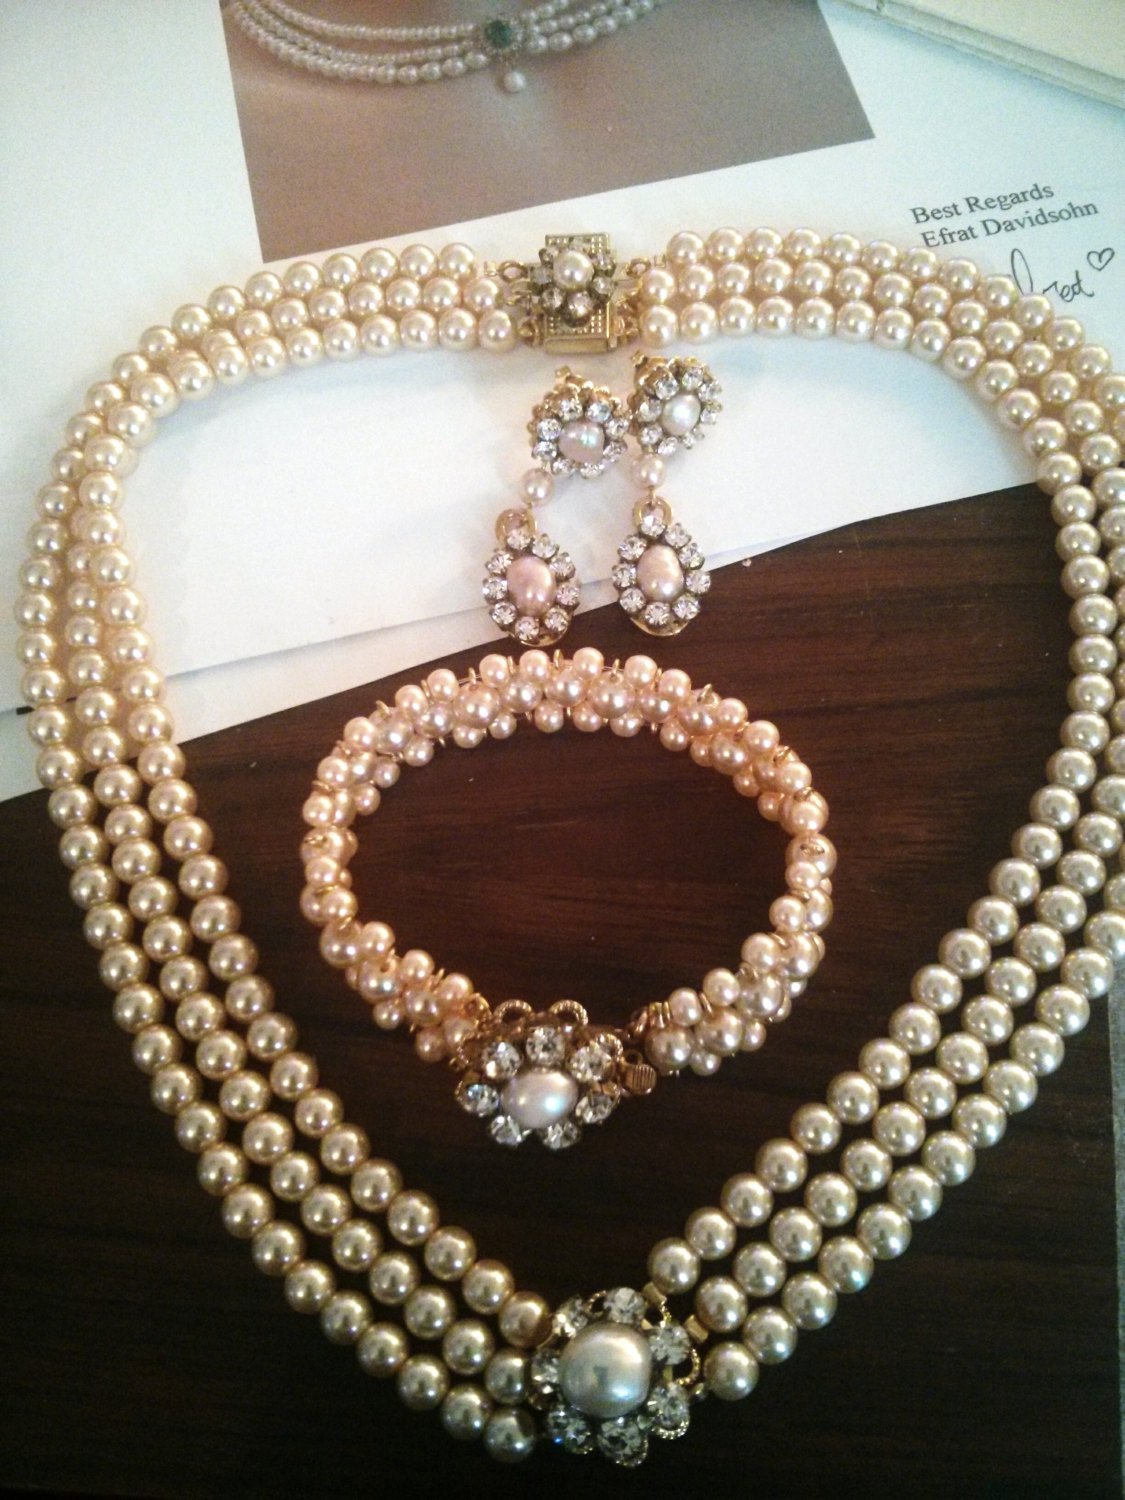 Blush Romantic Wedding Boho Bridal Necklace Rose Gold Layered Pearl Necklace Chunky Vintage Pearl /& Crystal Necklace